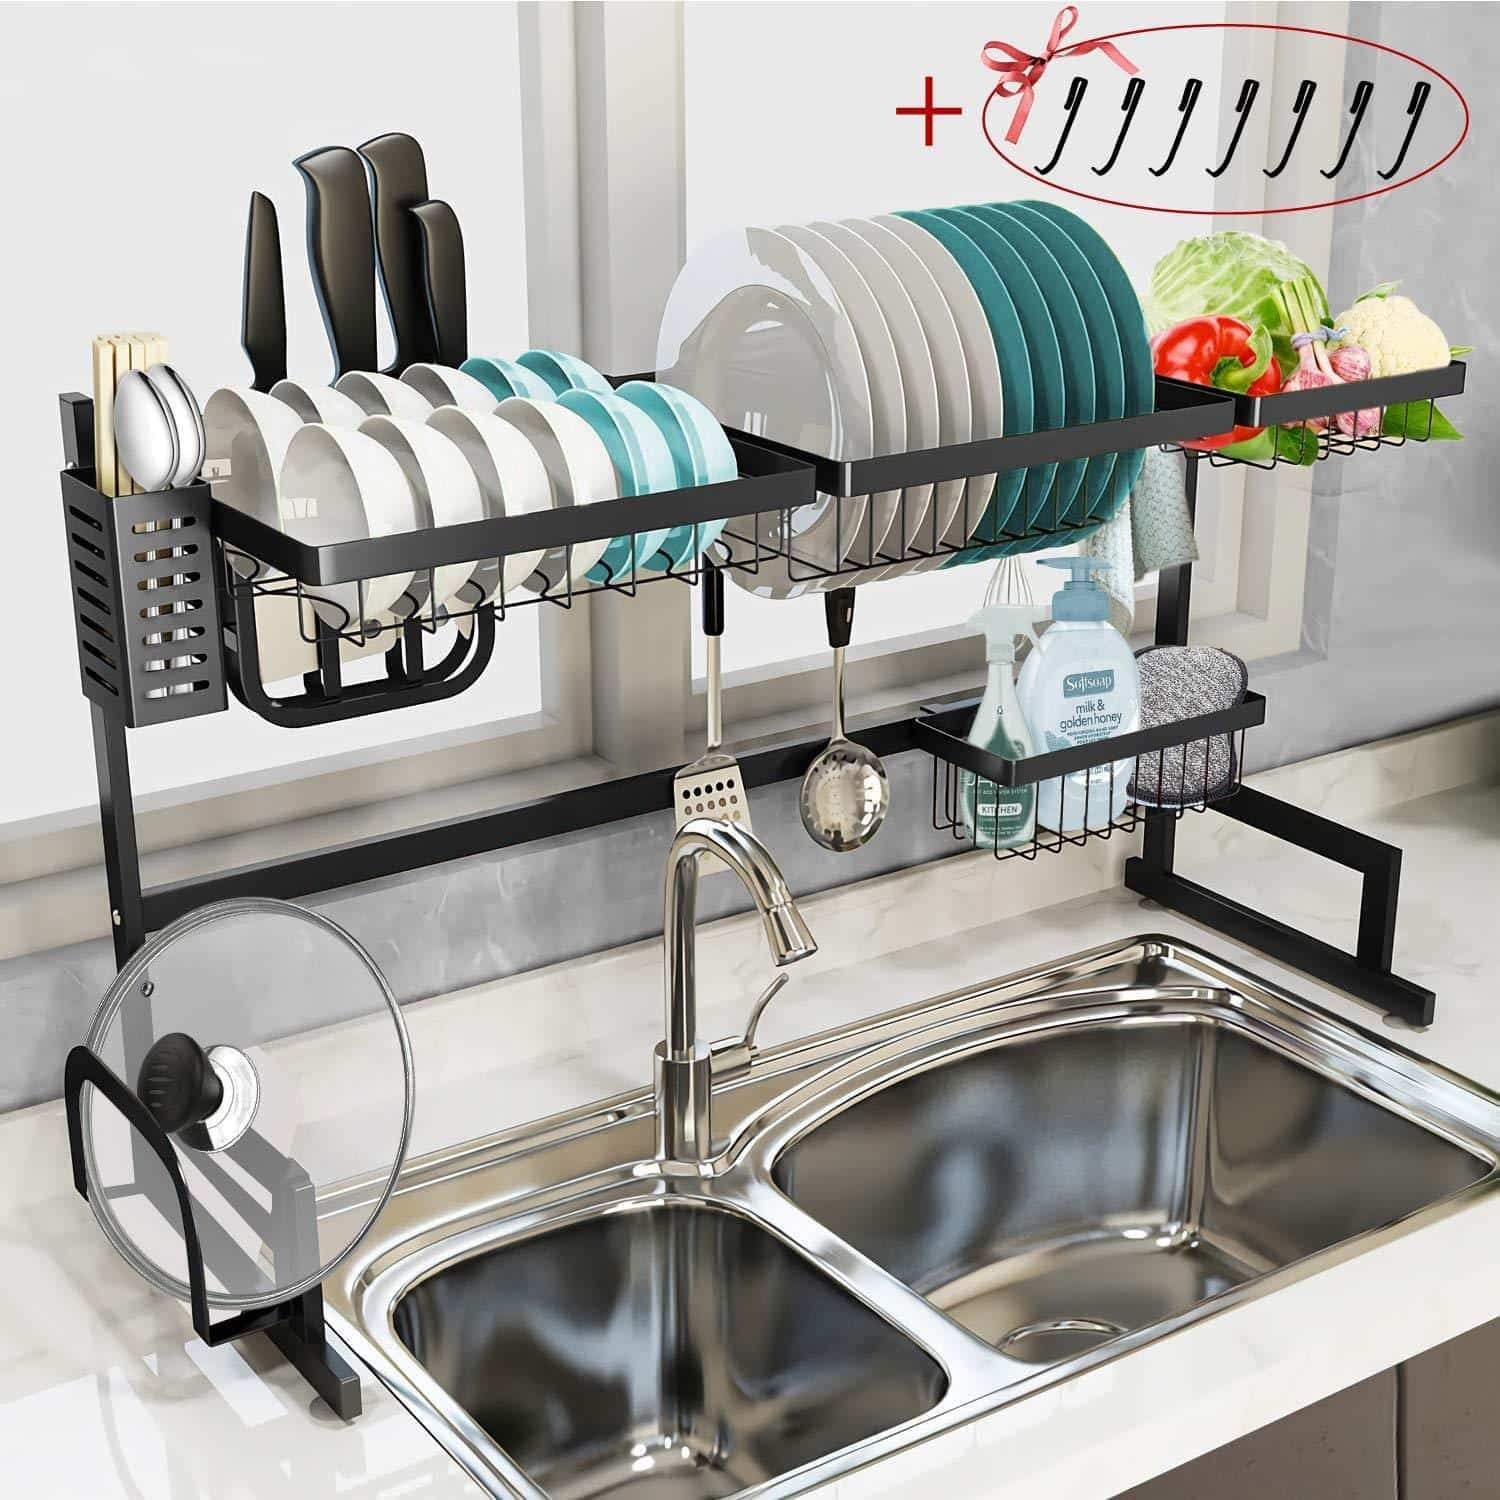 Dish Drying Rack Over the Sink - Tsmine Large Dish Drainers for Kitchen Counter,Stainless Steel Drain Bowl Dish Rack Kitchen Supplies Storage Shelf Utensils Holder with 7 Utility Holder Hooks